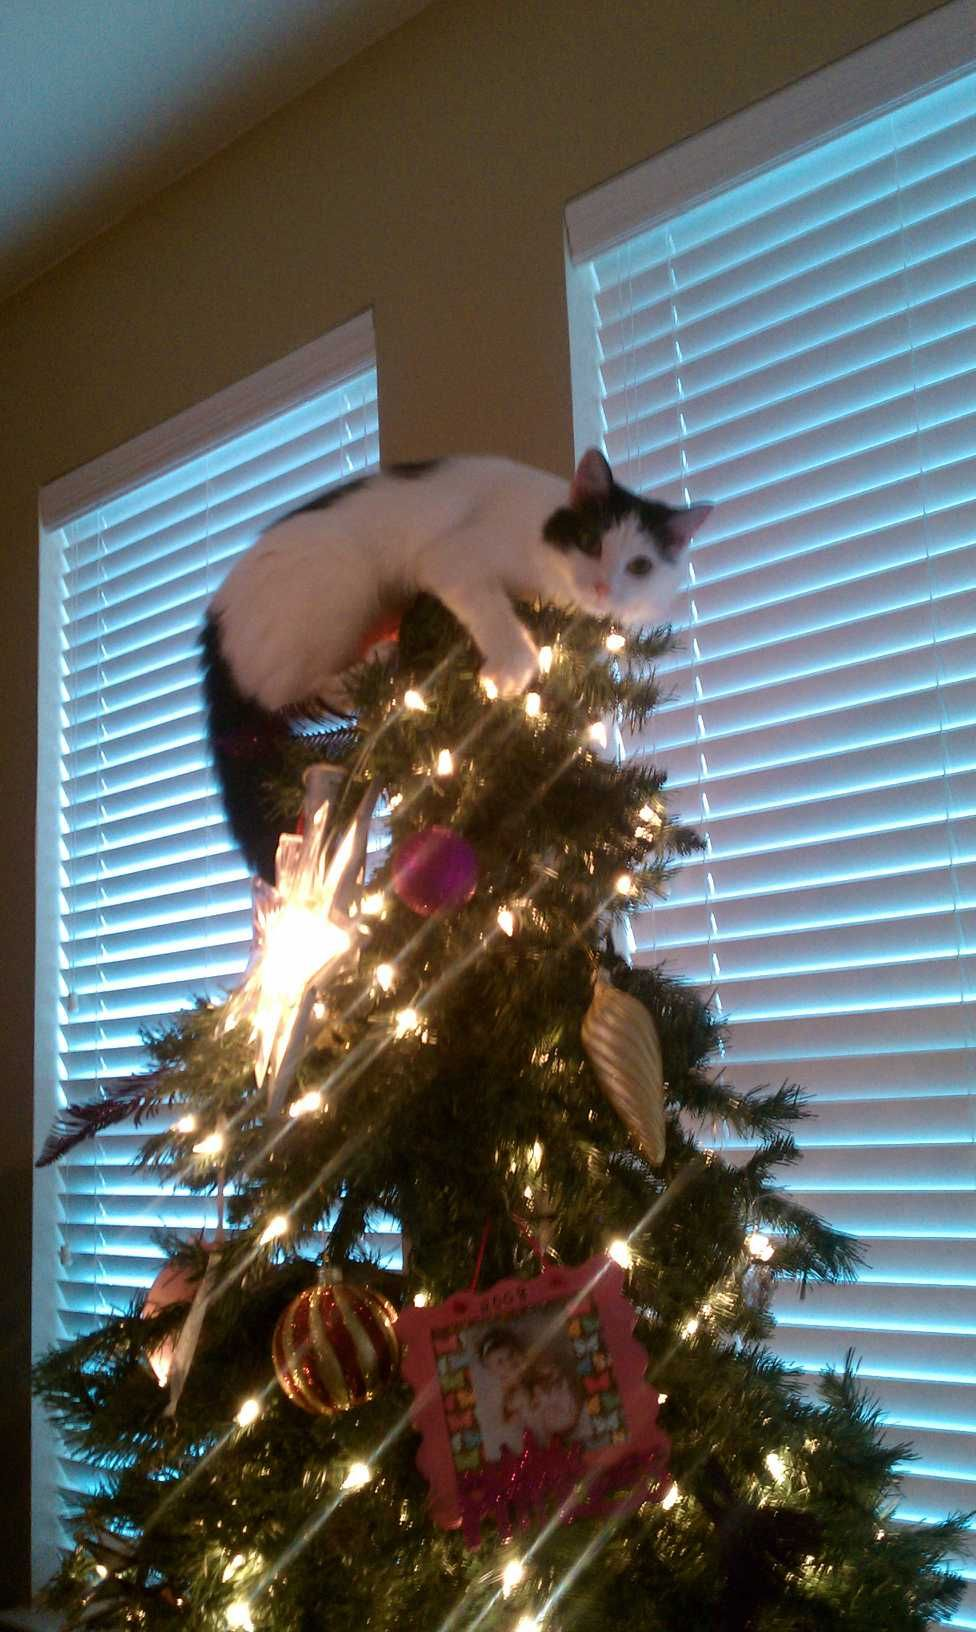 Tree Topper This Is A Perfectly Good Reason To Have Spray Bottles At Christmas Poopy Kitty Cat Christmas Tree Christmas Animals Christmas Cats